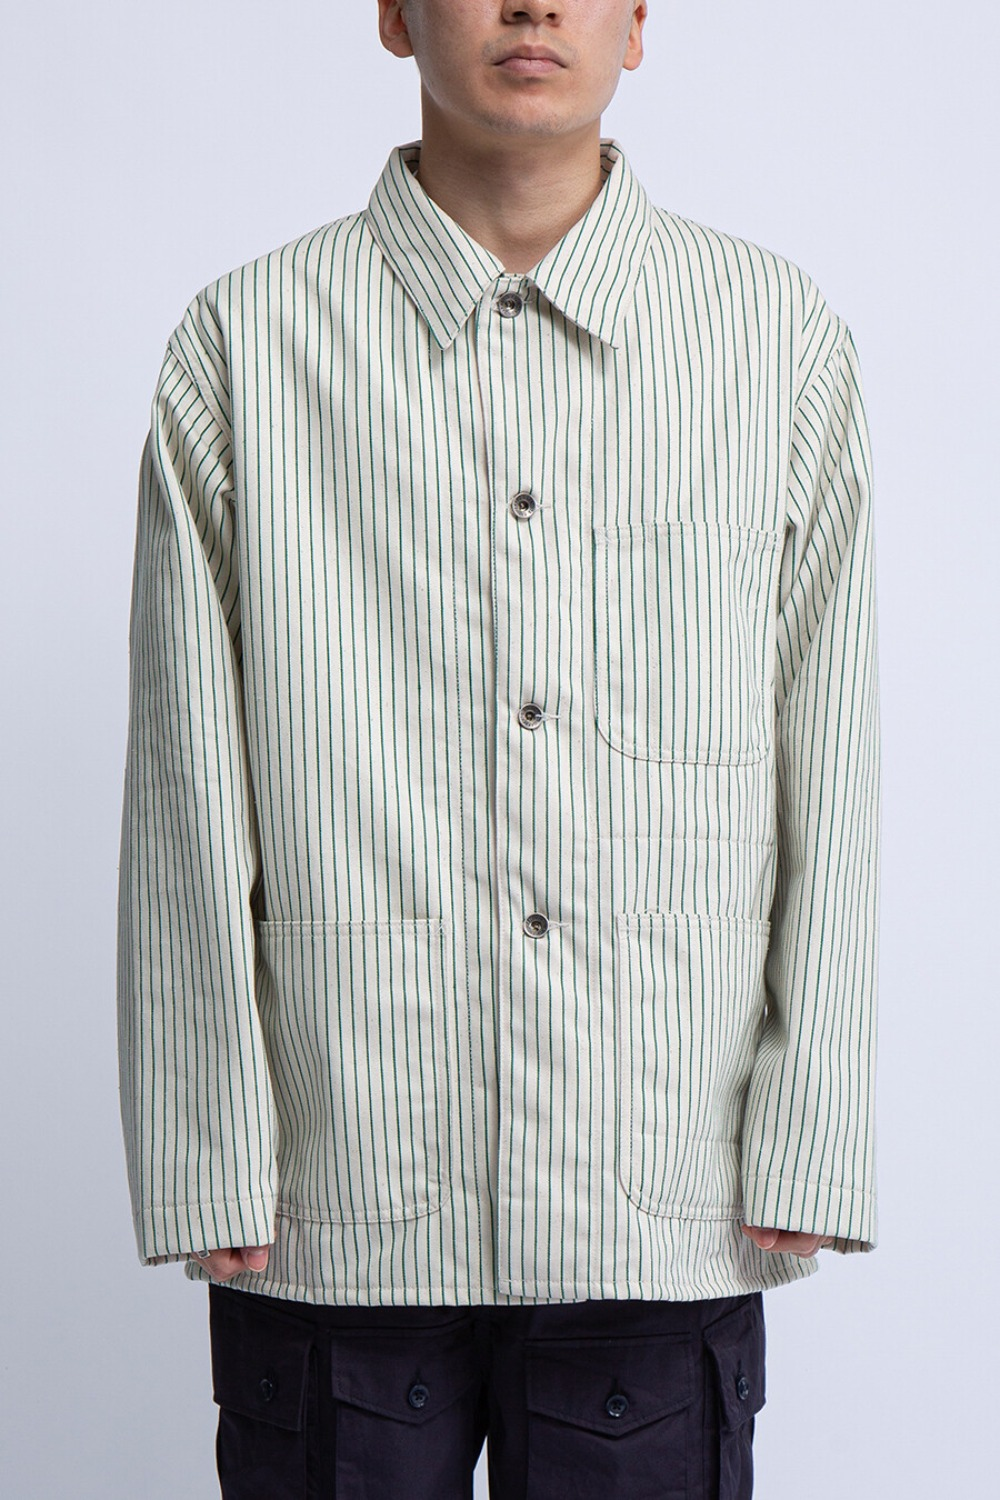 UTILITY JACKET NATURAL GREEN UNIFORM STRIPE